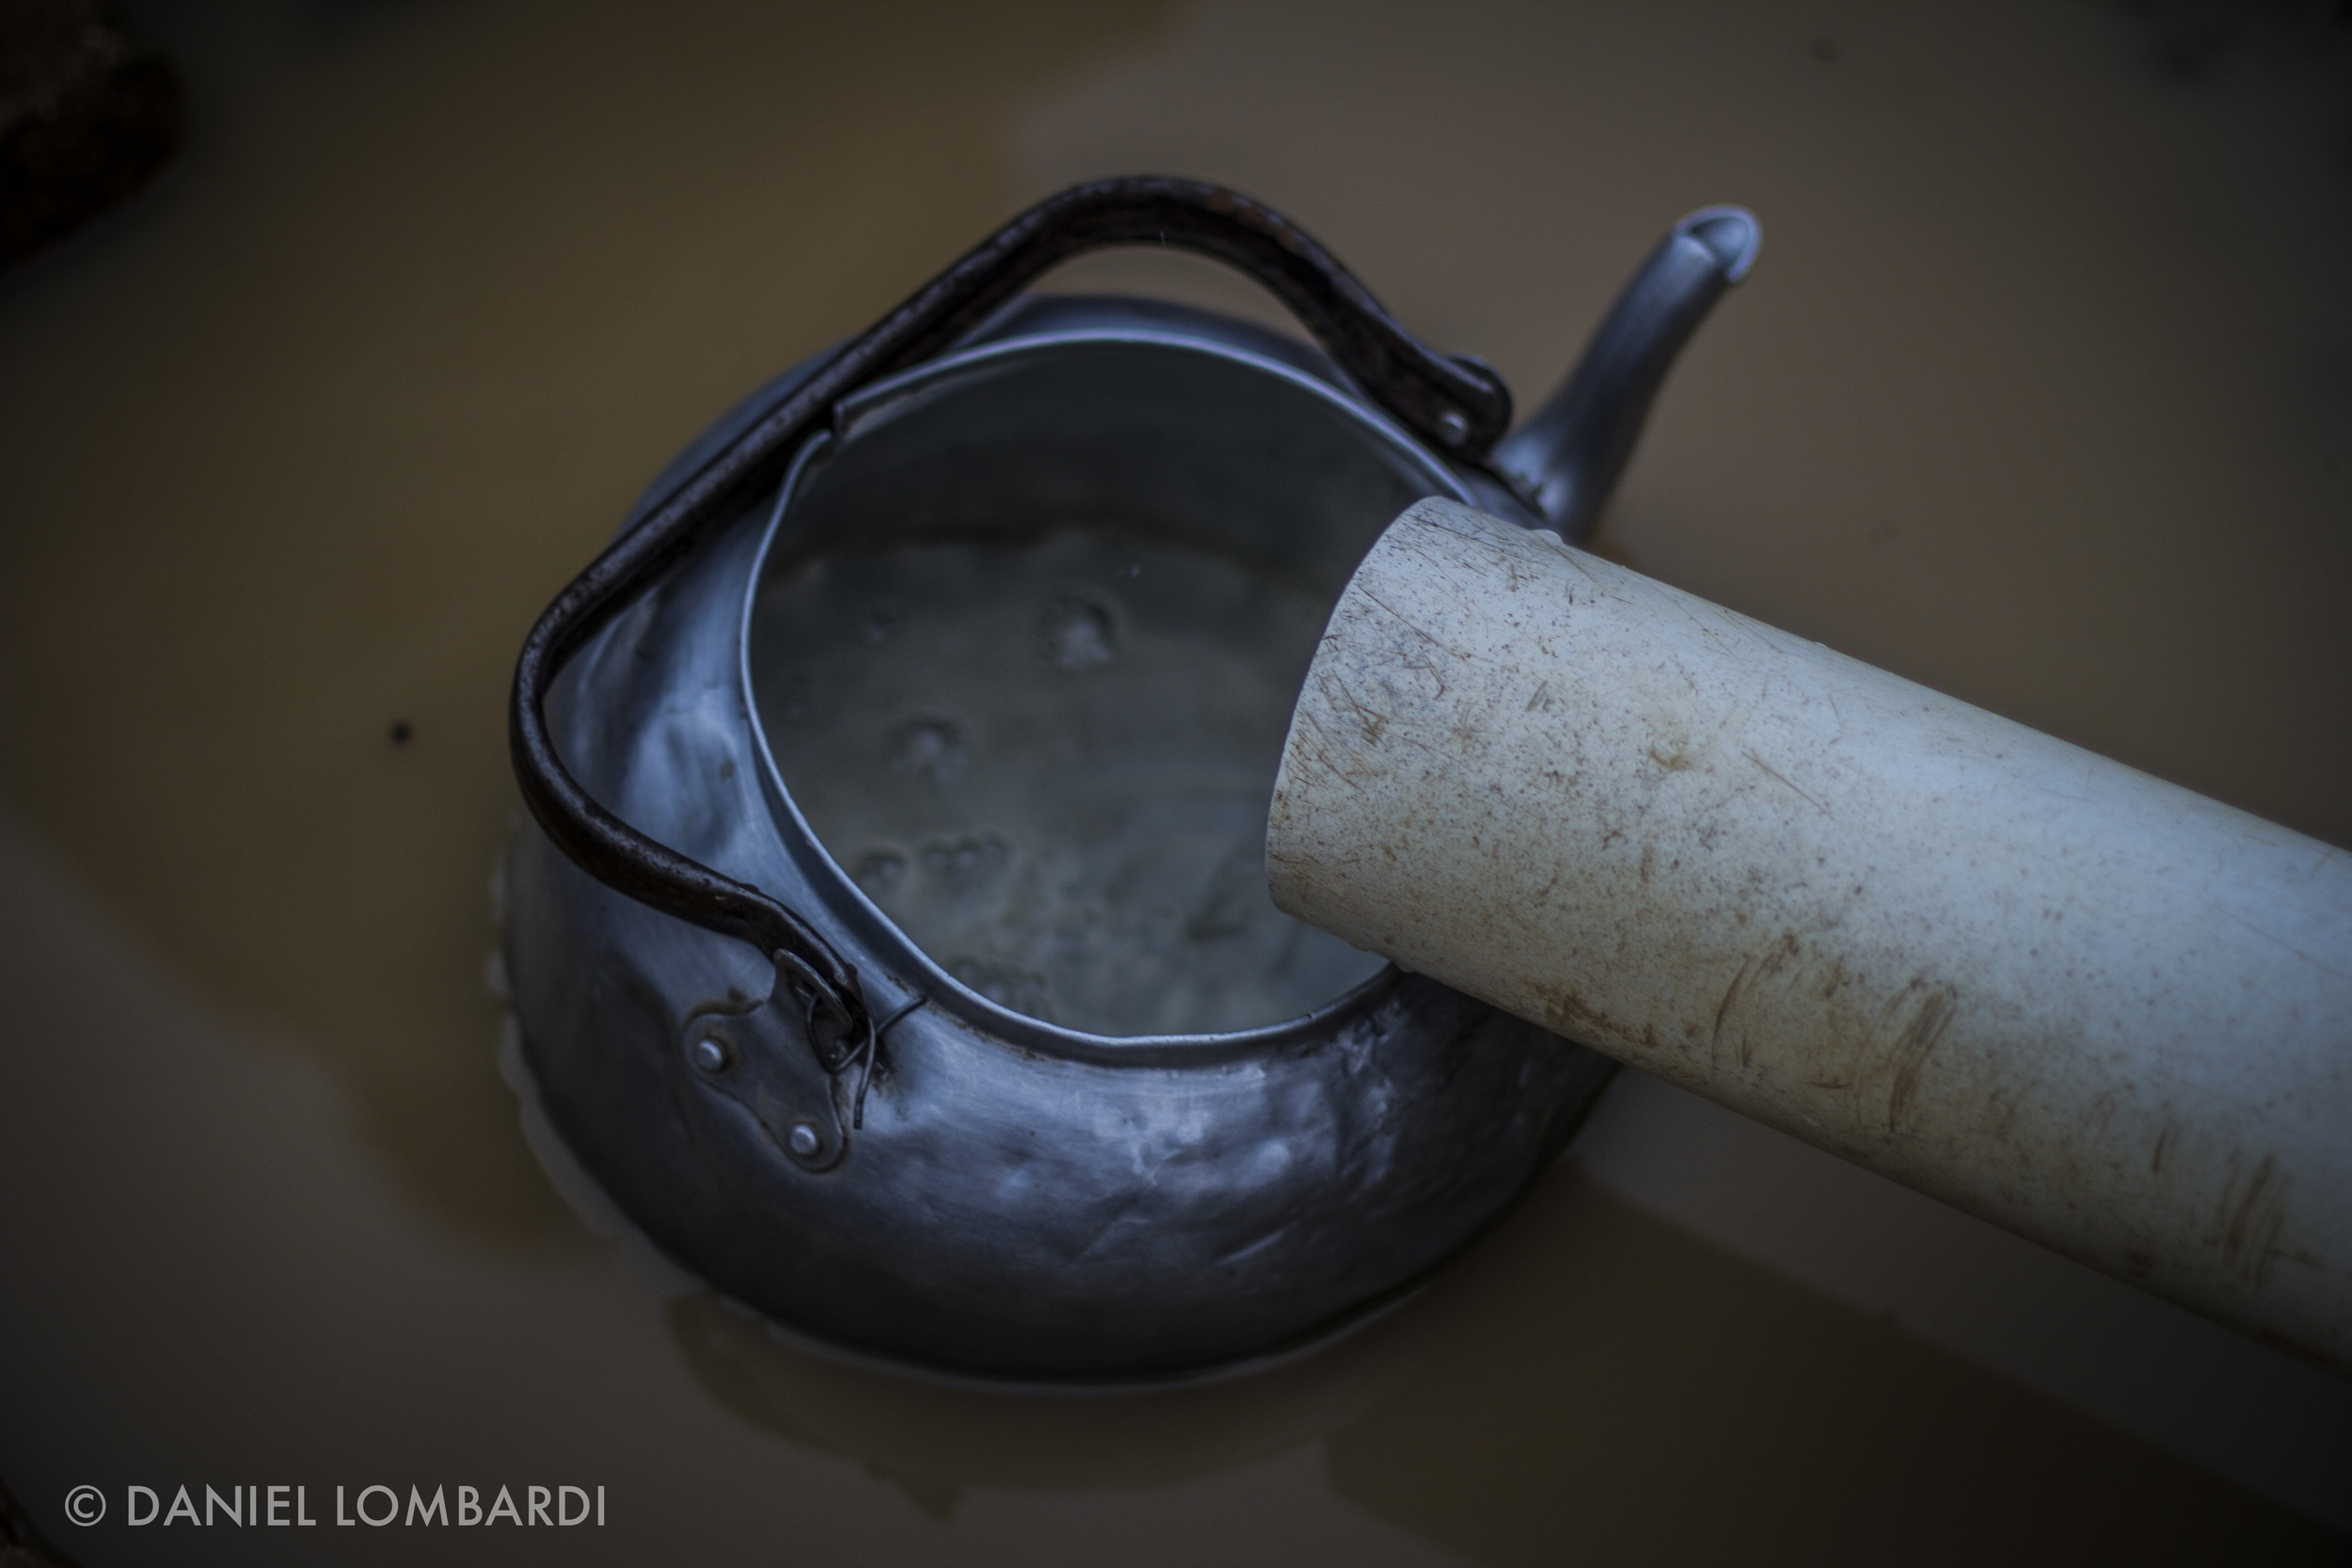 There are 1.6 million deaths per year attributed to dirty water and poor sanitation. Early every morning a woman waits several minutes for her teapot to fill then she pours the kettle into her jerrycans. The whole process takes her around five hours every day.